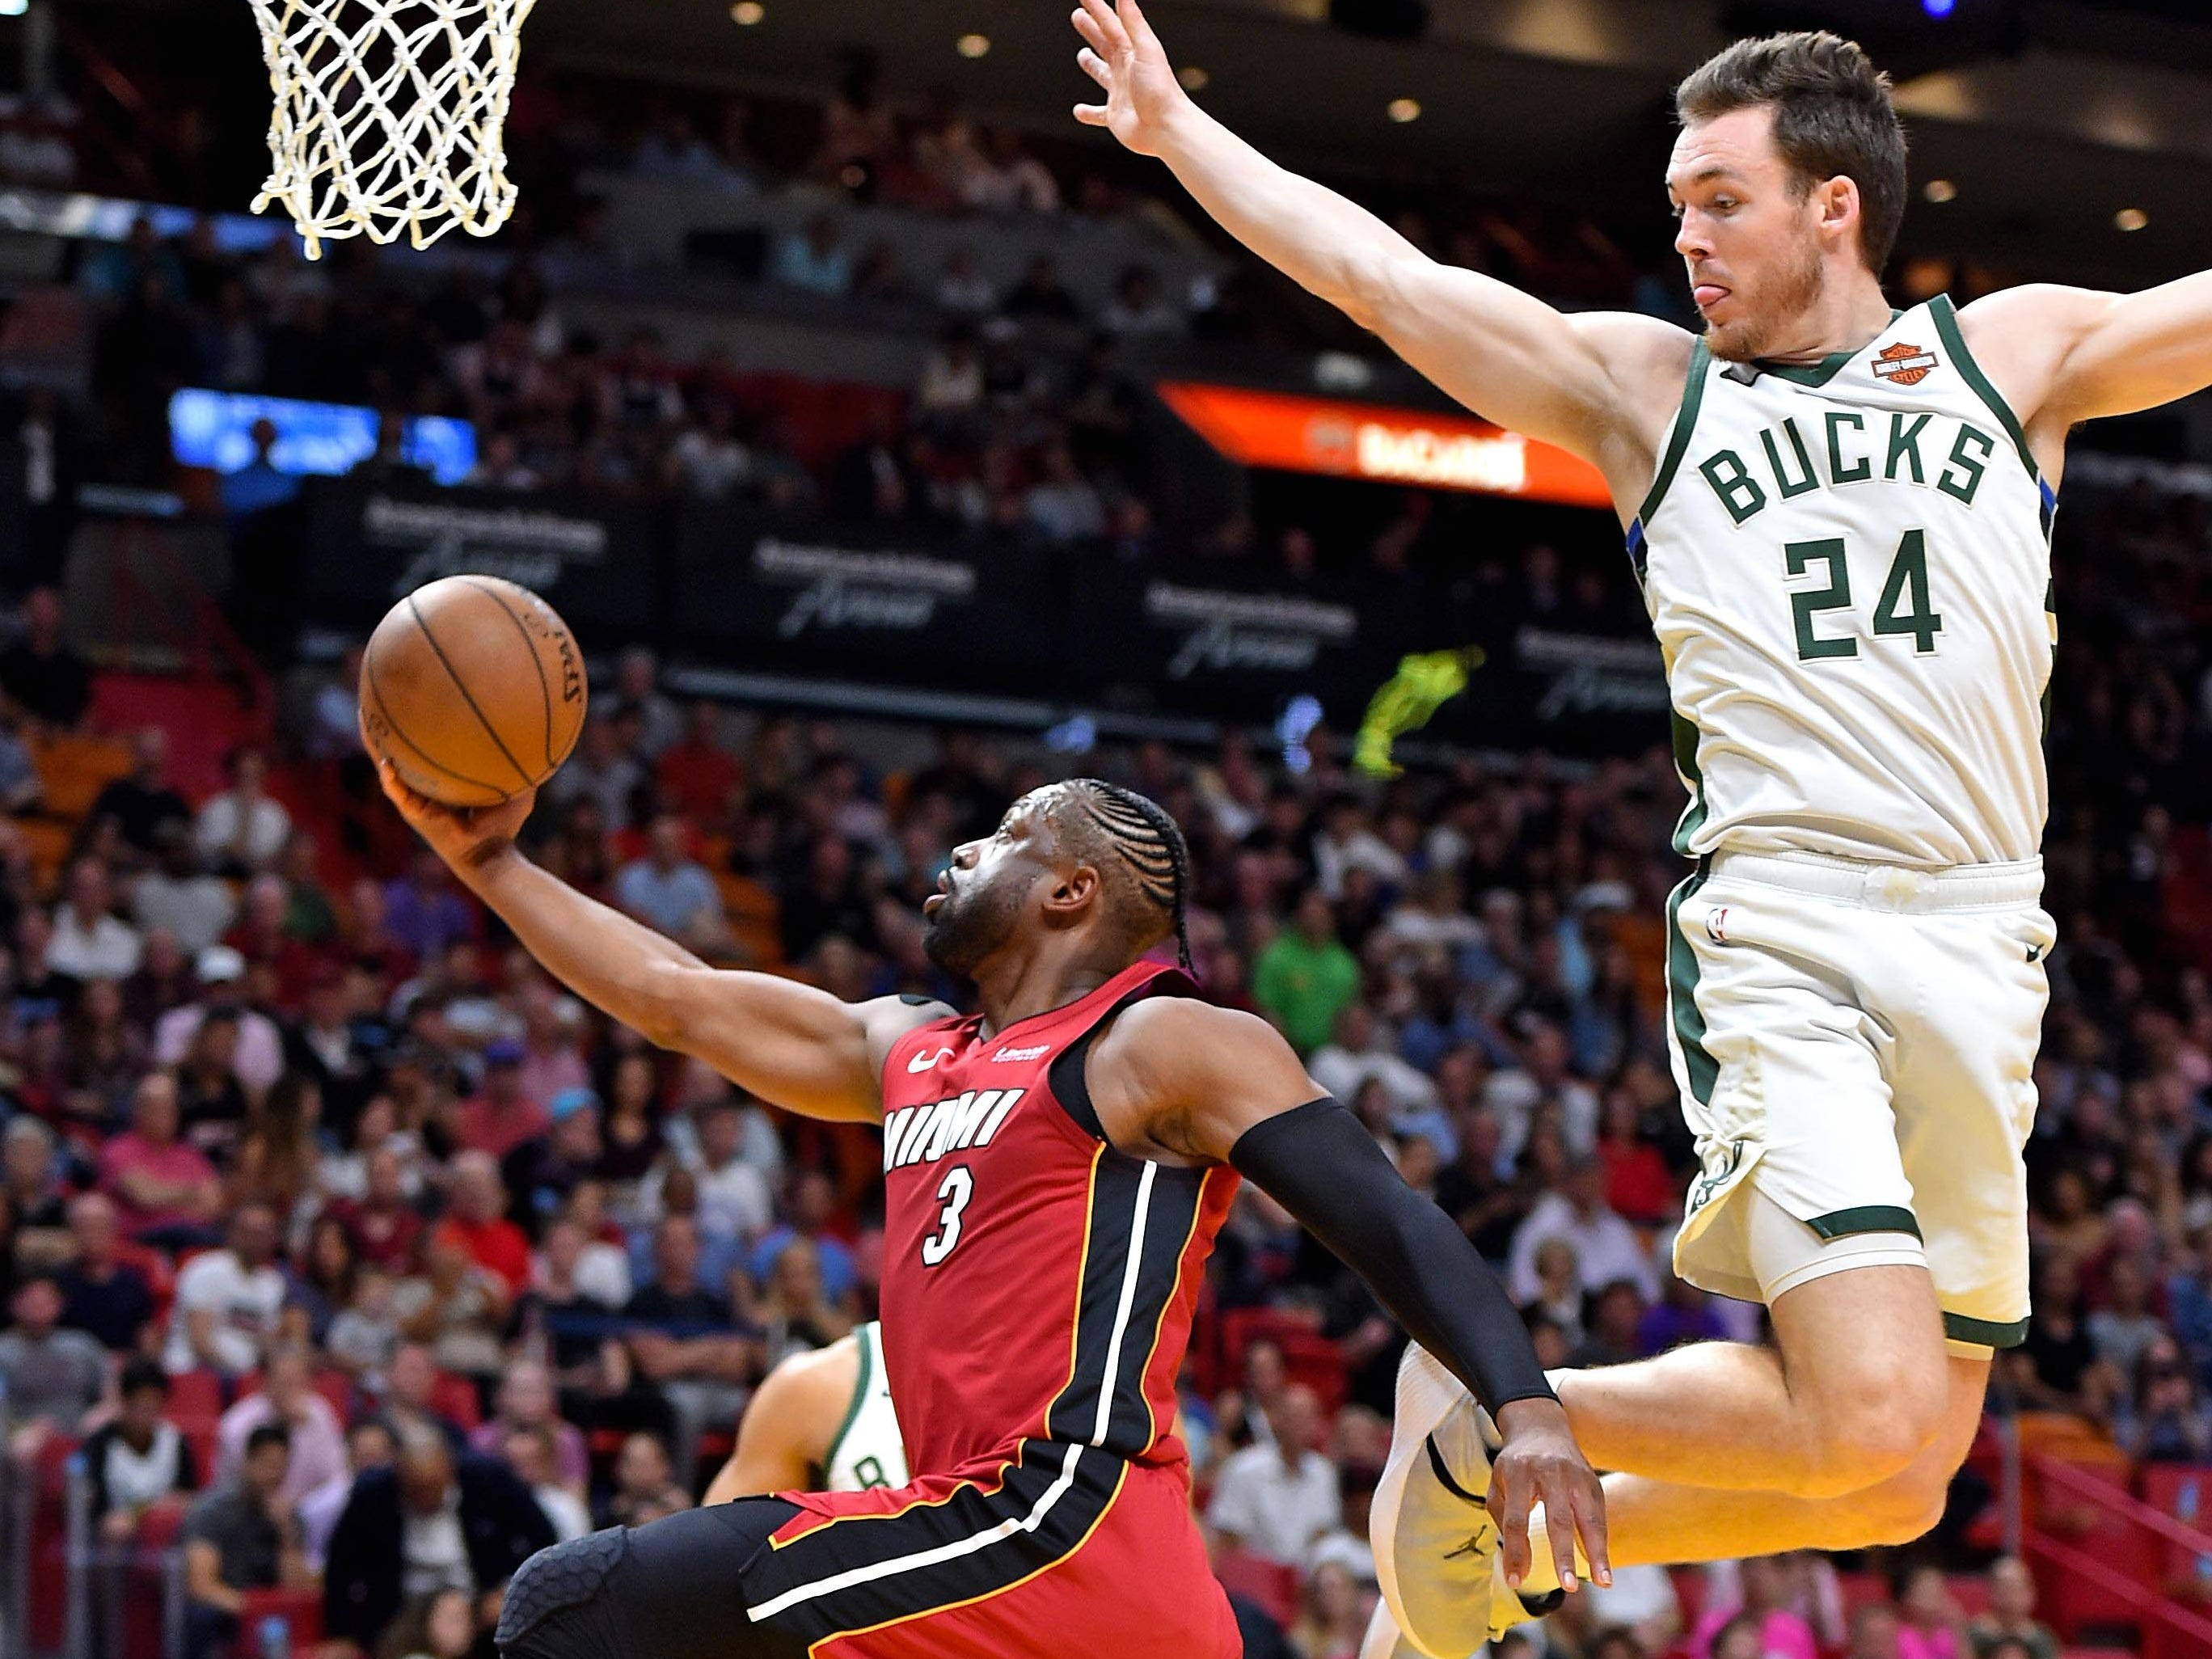 Heat guard Dwyane Wade drives to the basket ahead of Pat Connaughton.